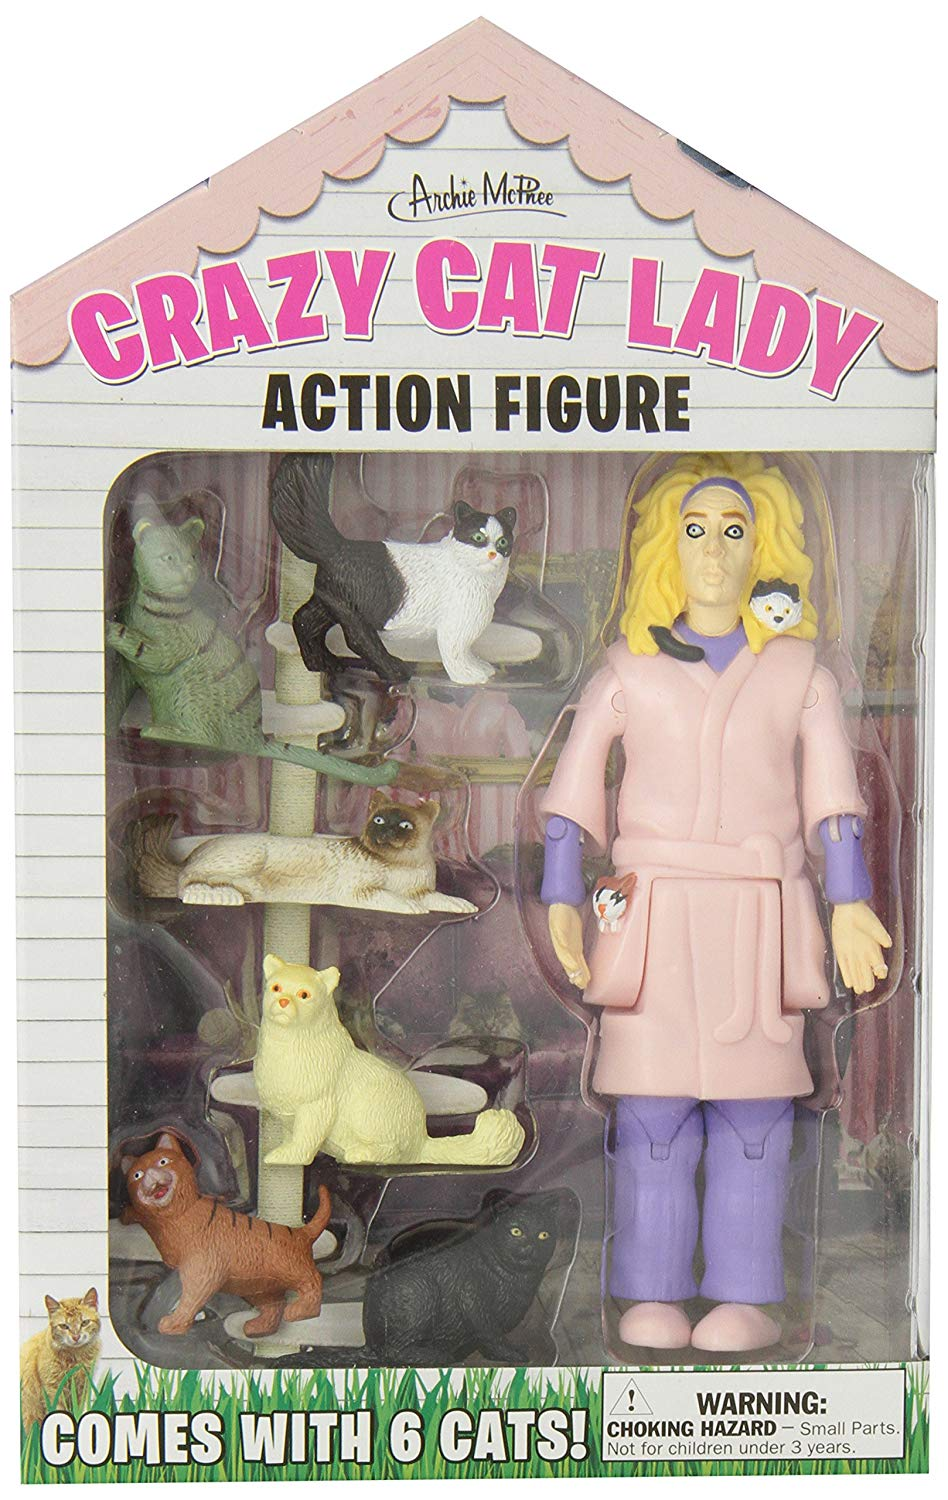 LOOK! They made an action figure of you! - If you want to know what you will look like in 10 years, this is a pretty good representation.